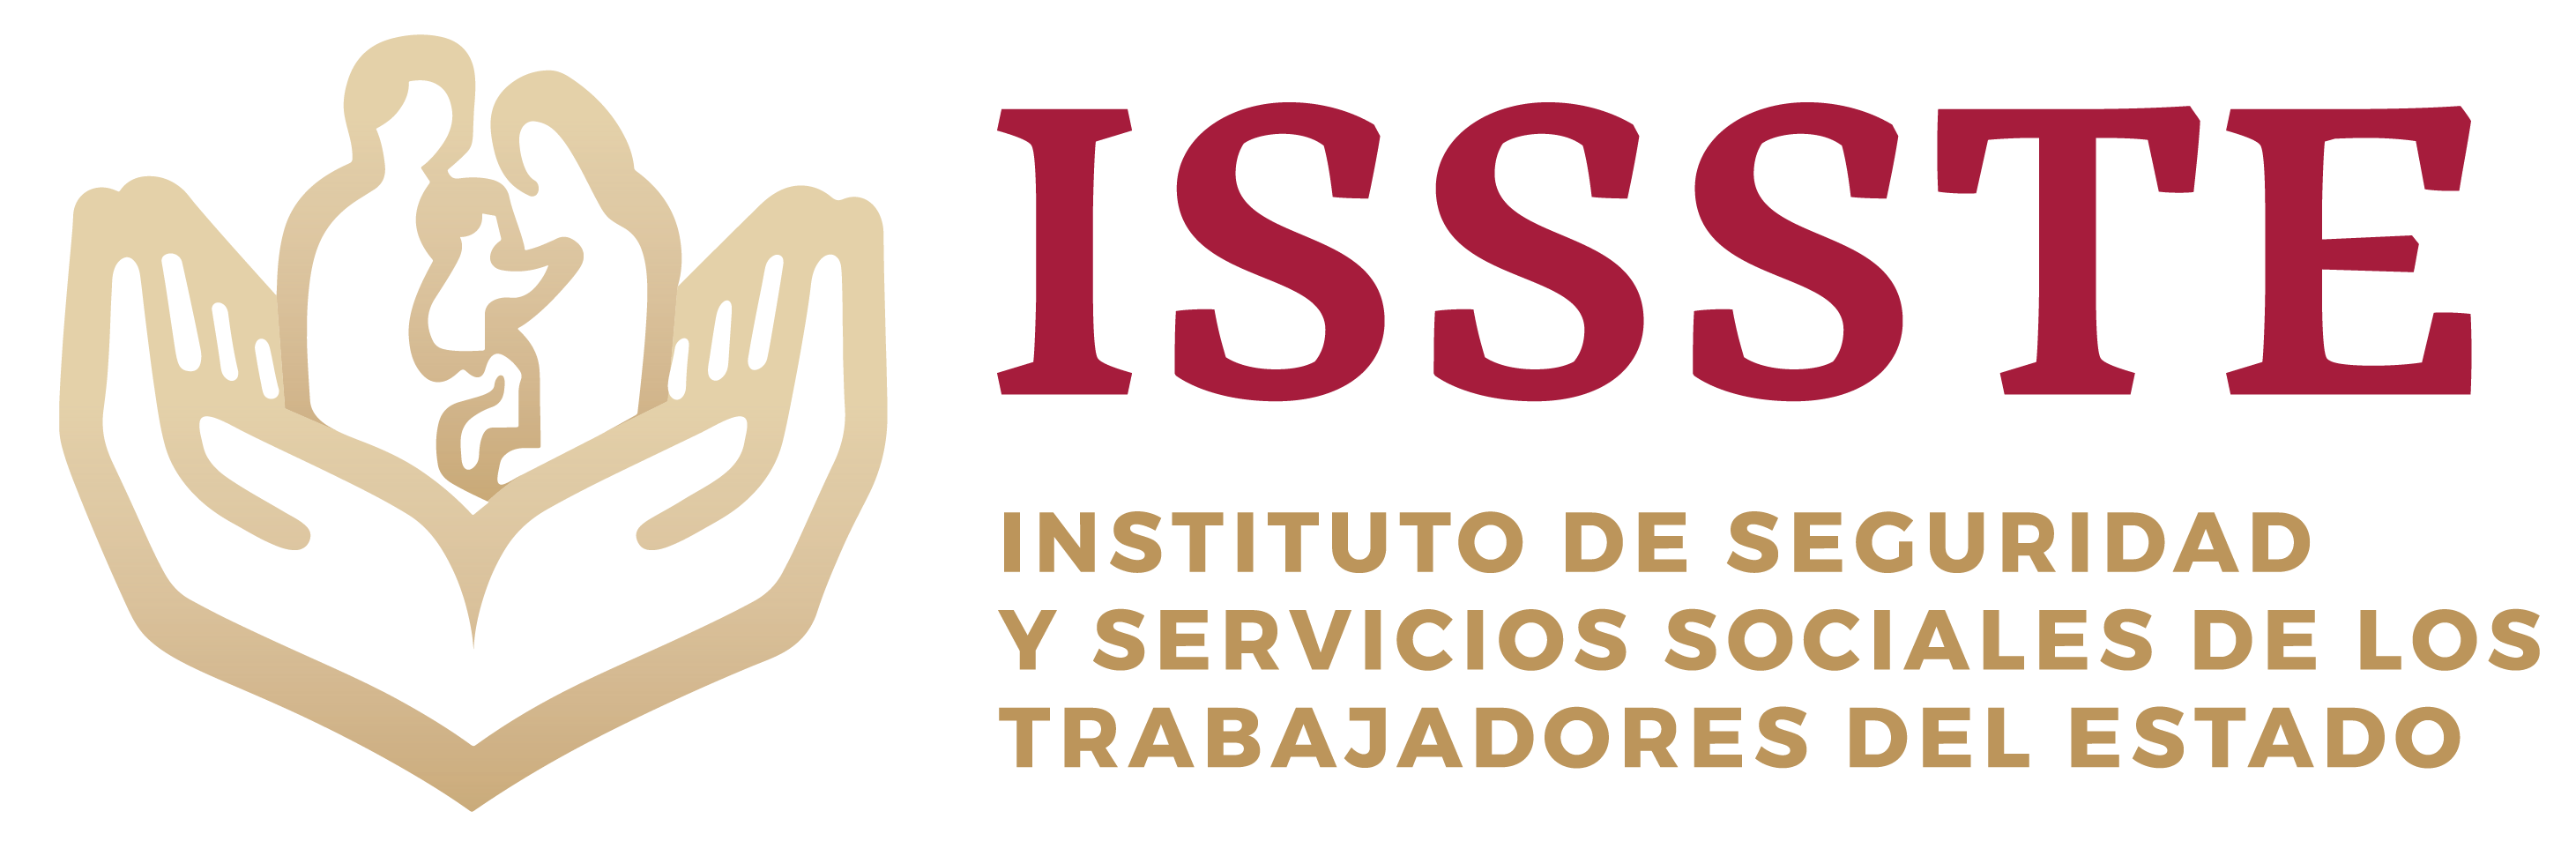 File:ISSSTE logo.png - Wikimedia Commons